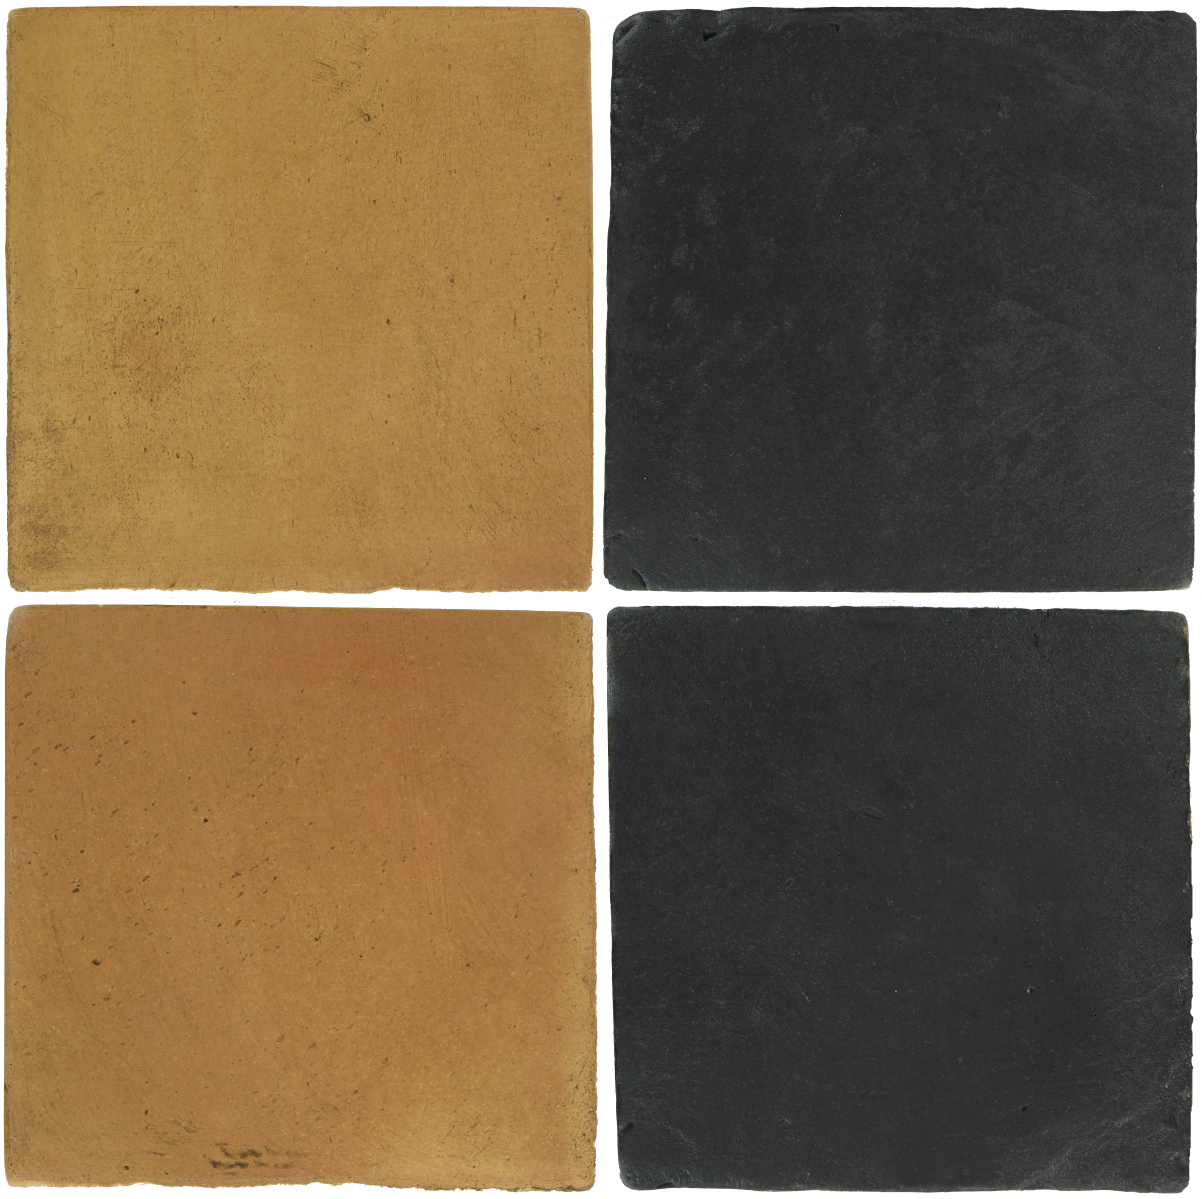 Pedralbes Antique Terracotta  2 Color Combinations  OHS-PSSW Siena Wheat + VTG-PGCB Carbon Black